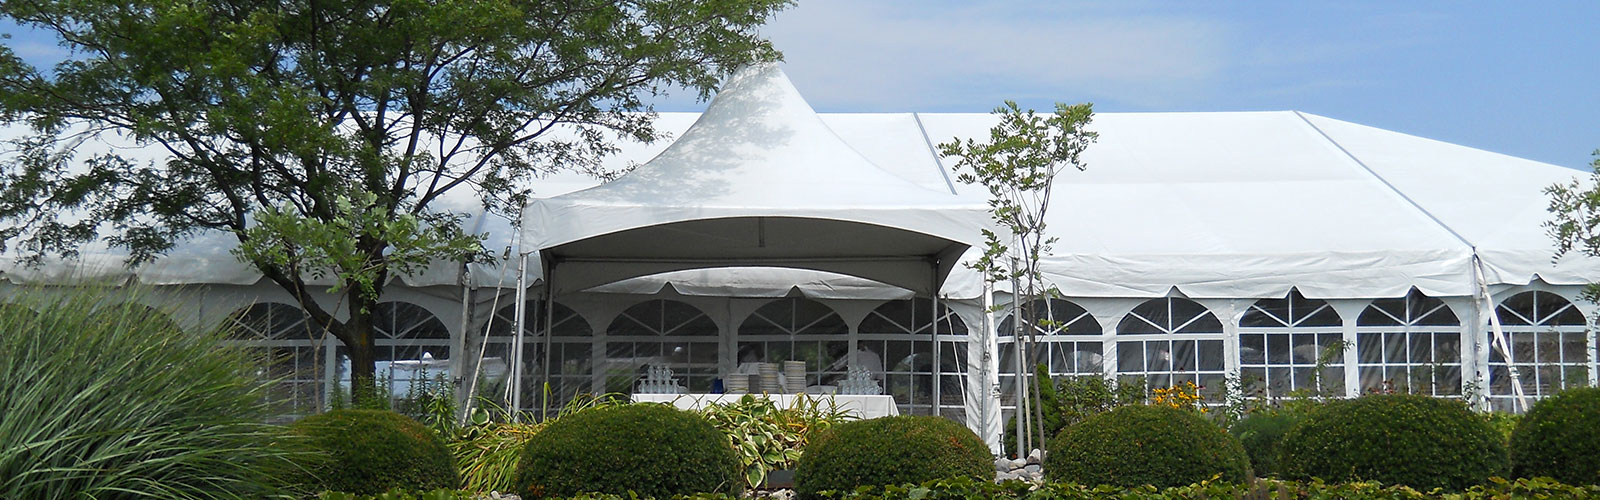 Tent rentals in Southwest Michigan & Rentalex Events - Event Rentals in Kalamazoo MI | Tent Rental in ...